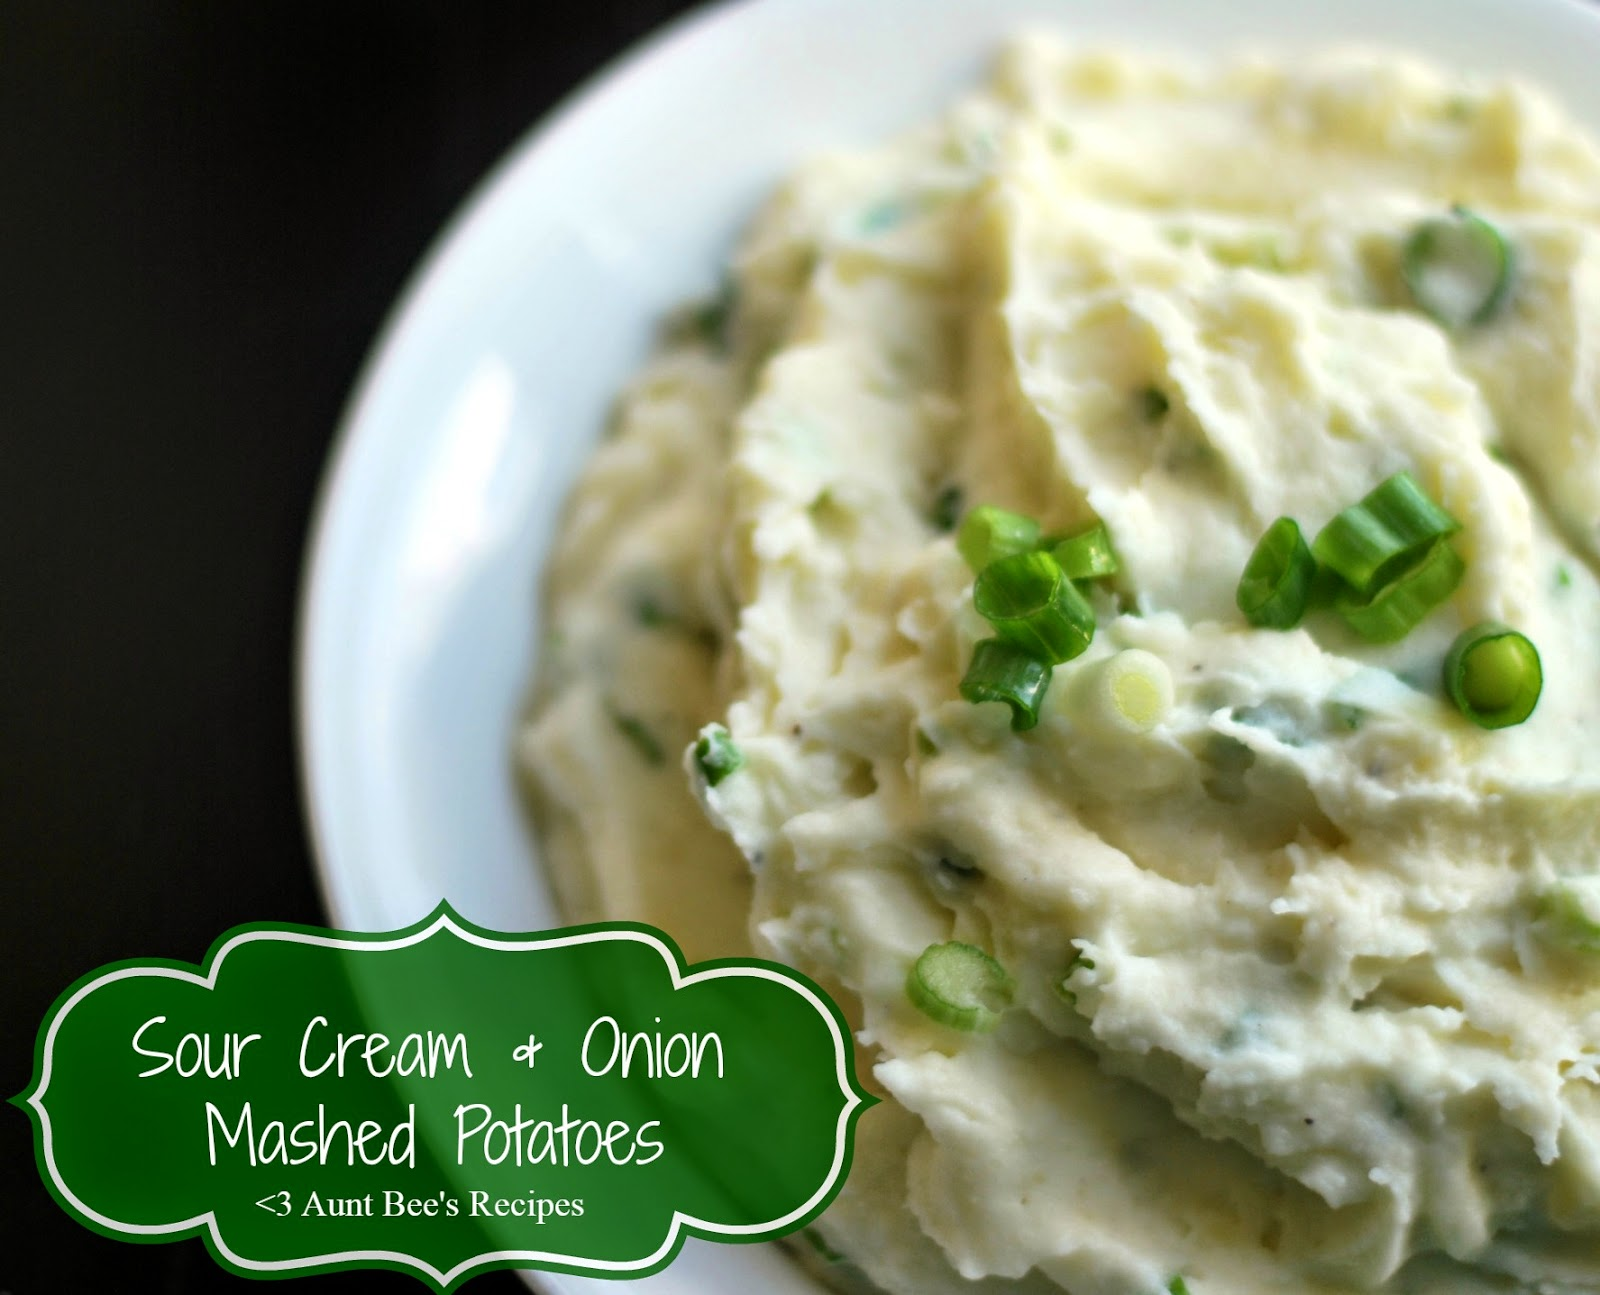 Sour Cream & Onion Mashed Potatoes | Aunt Bee's Recipes